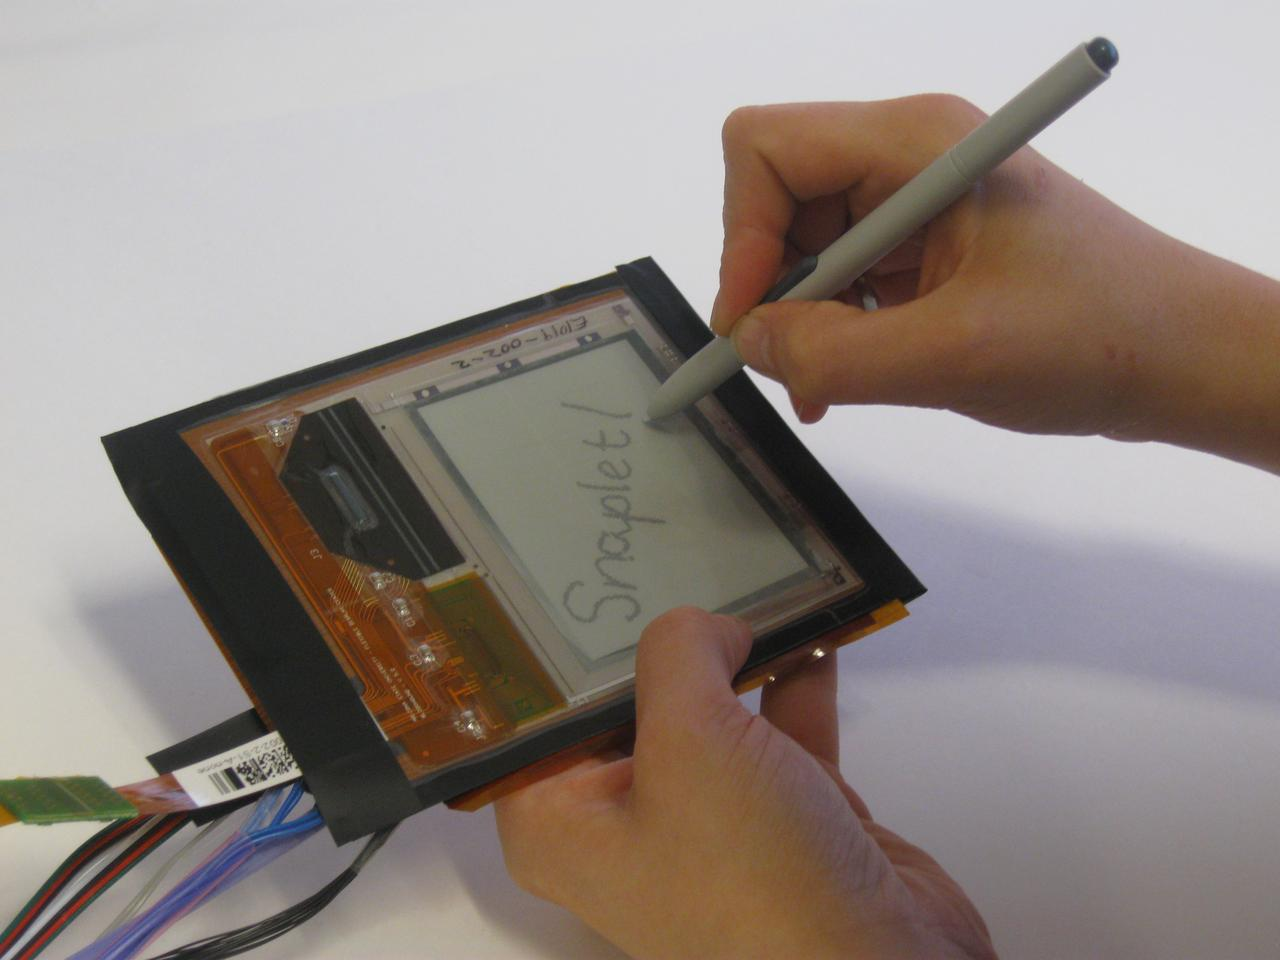 The Snaplet's Wacom tablet function